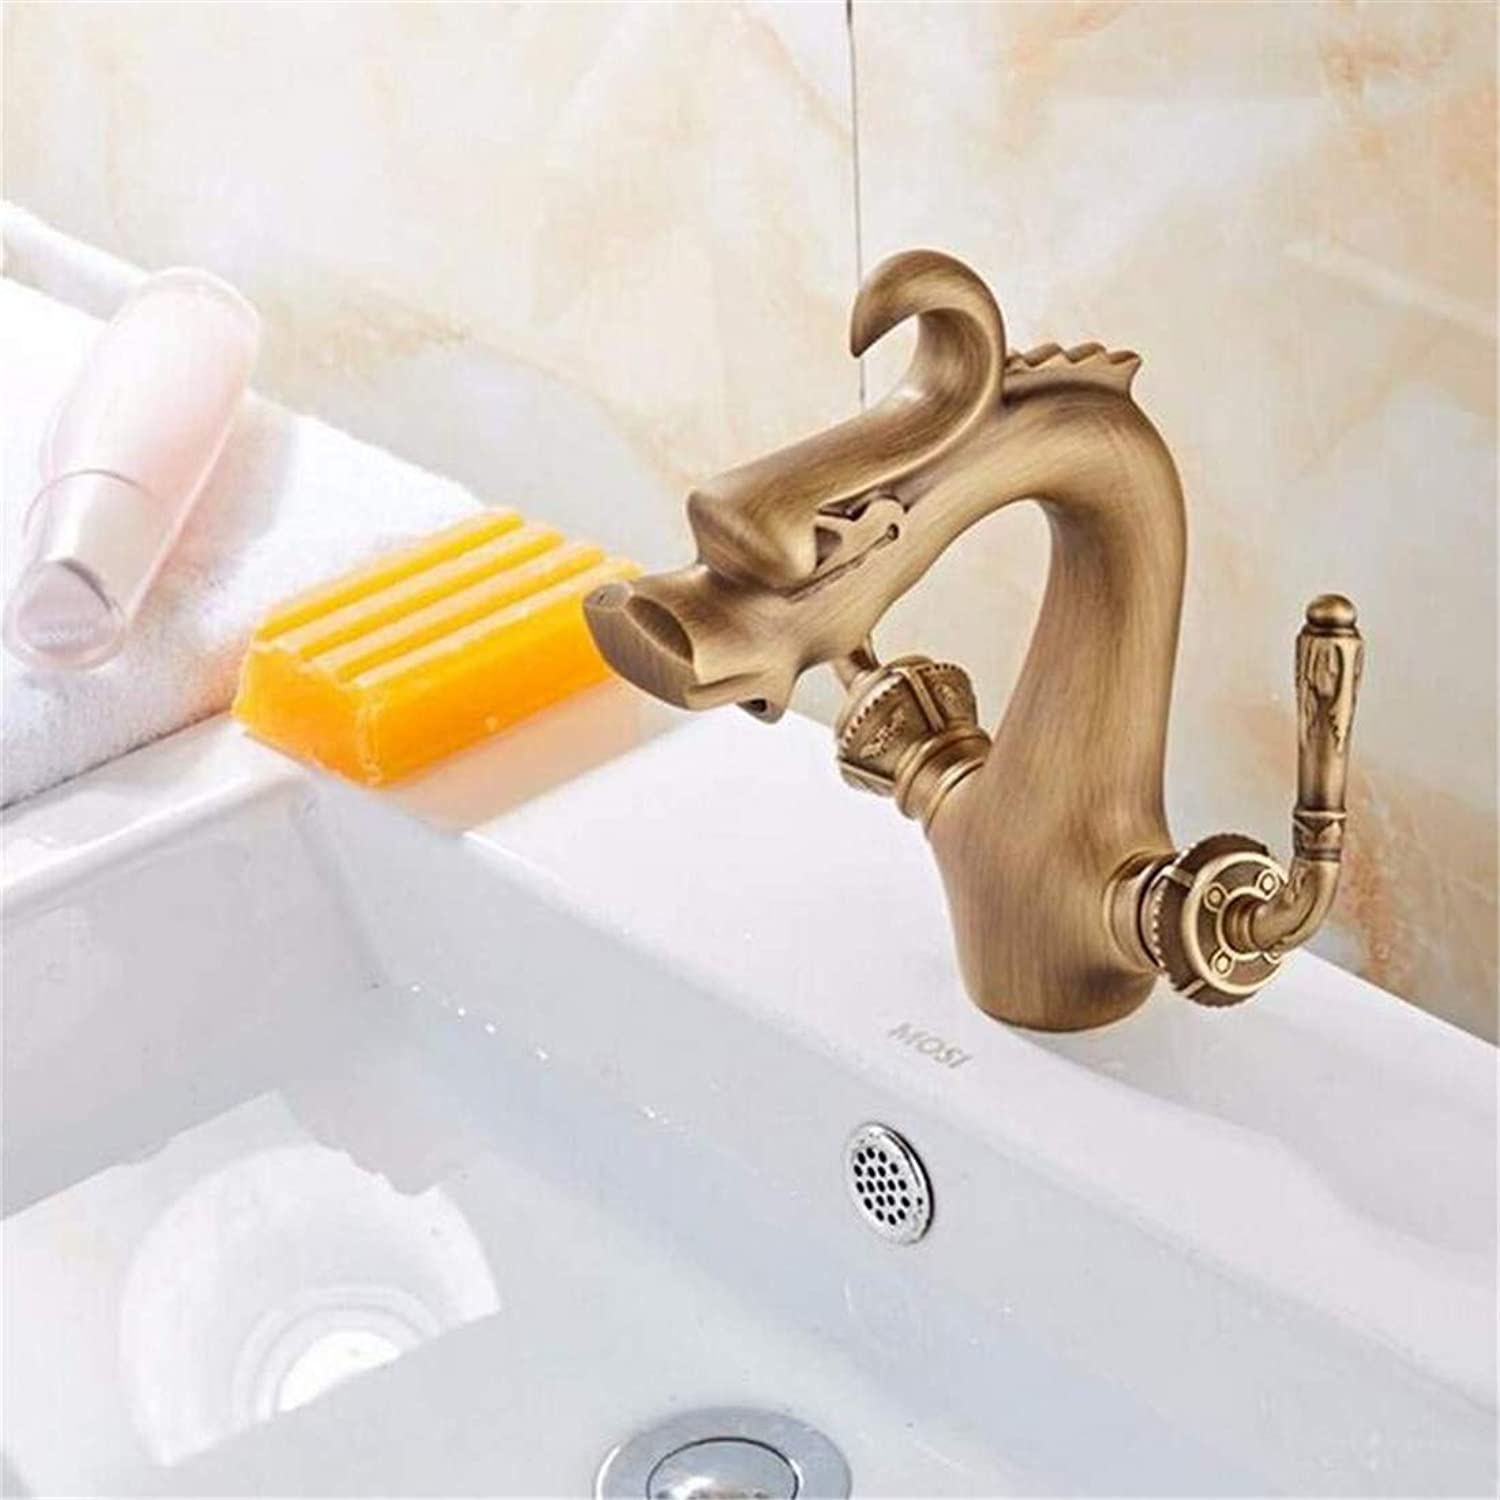 Retro Tap Modern Luxury Copper Mixer Retro Home Full Brass Faucet Basin Mixer Hot & Cold Bathroom Faucet